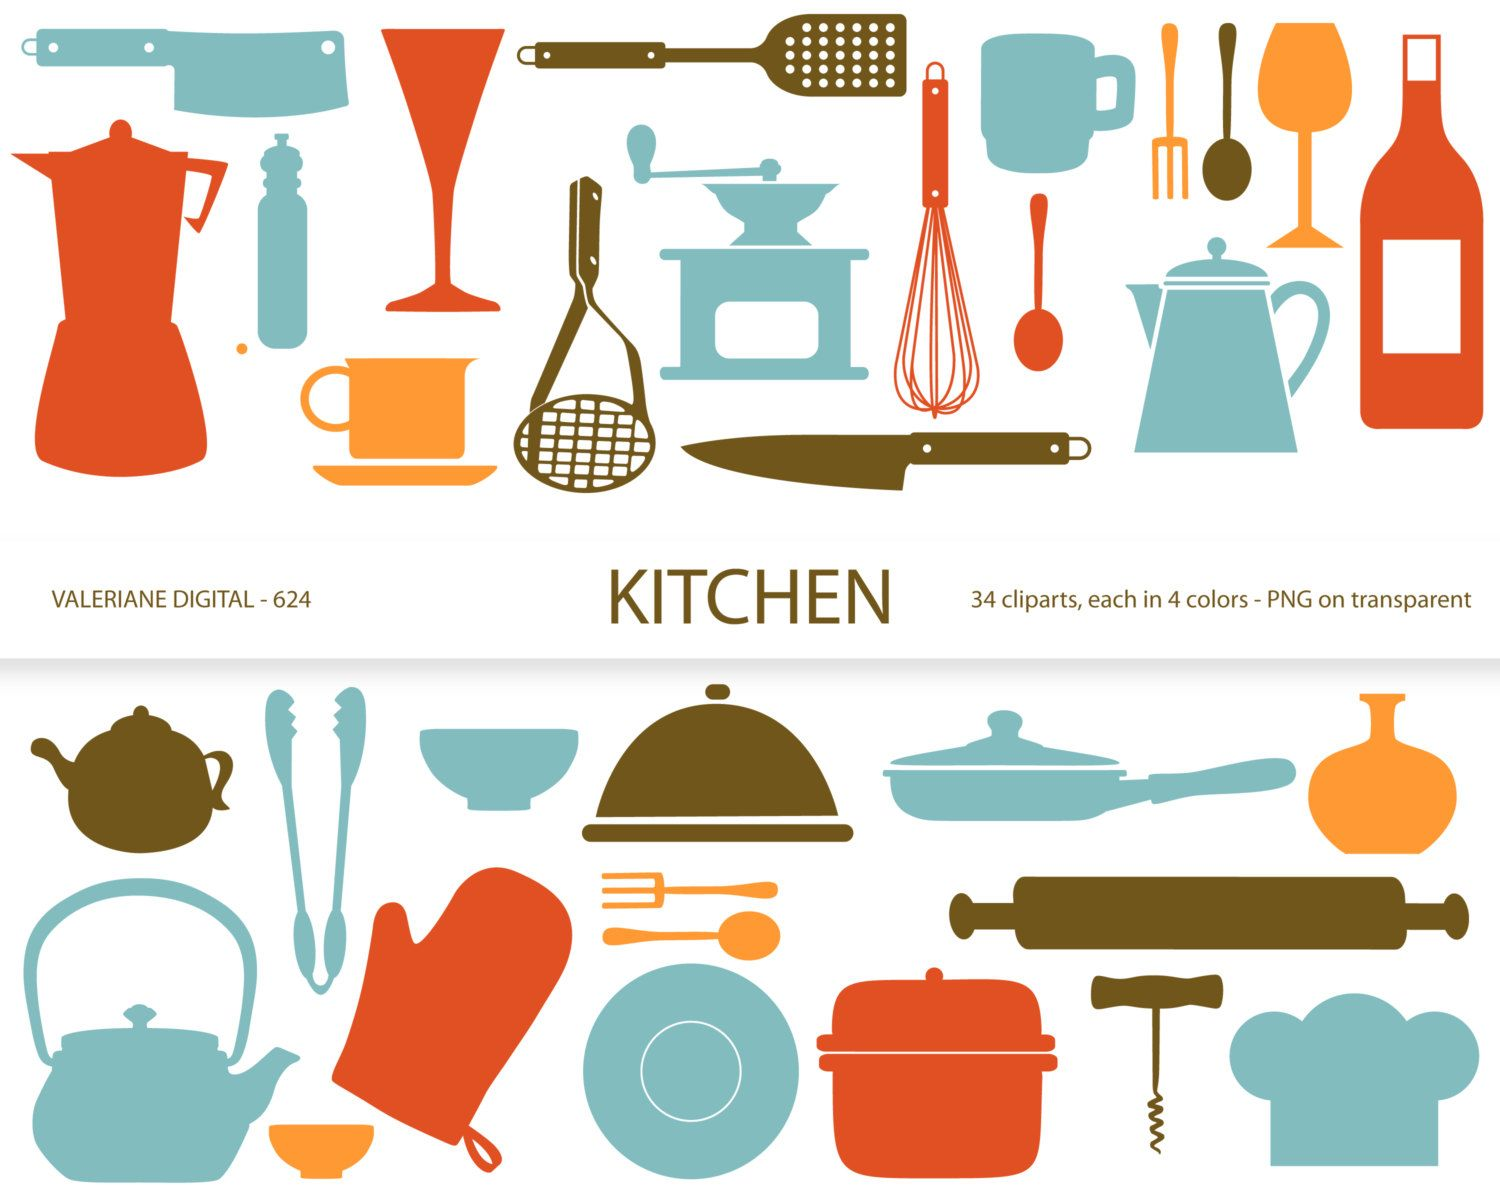 Kitchen clipart\'s, retro kitchen utensils, scrapbook.